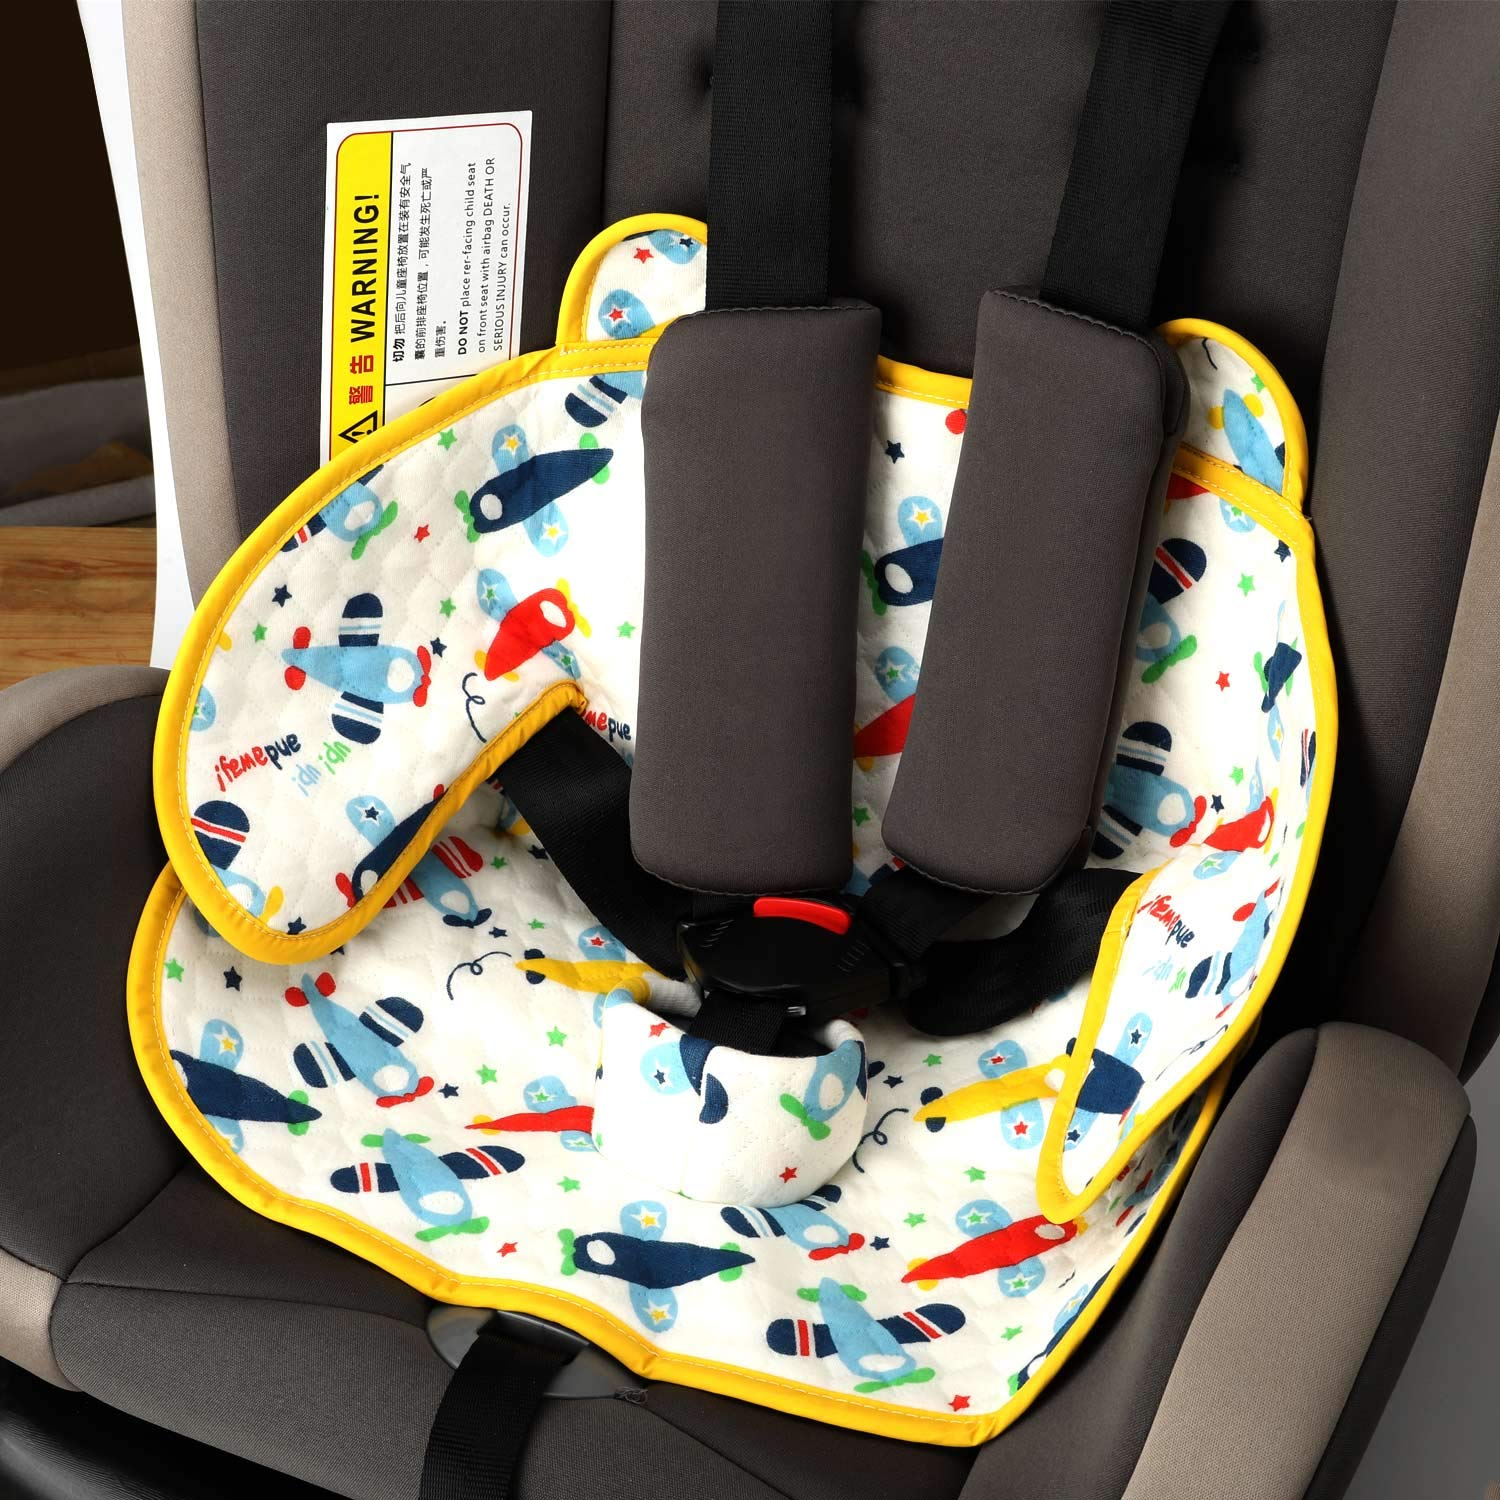 Epltion Piddle Pad Car Seat Protector,Potty Training Seat Saver Pads for Infants Baby and Toddlers,2019 Updated Leak Free Car Seat Liner for Baby Stroller and Bouncers 1 Pack